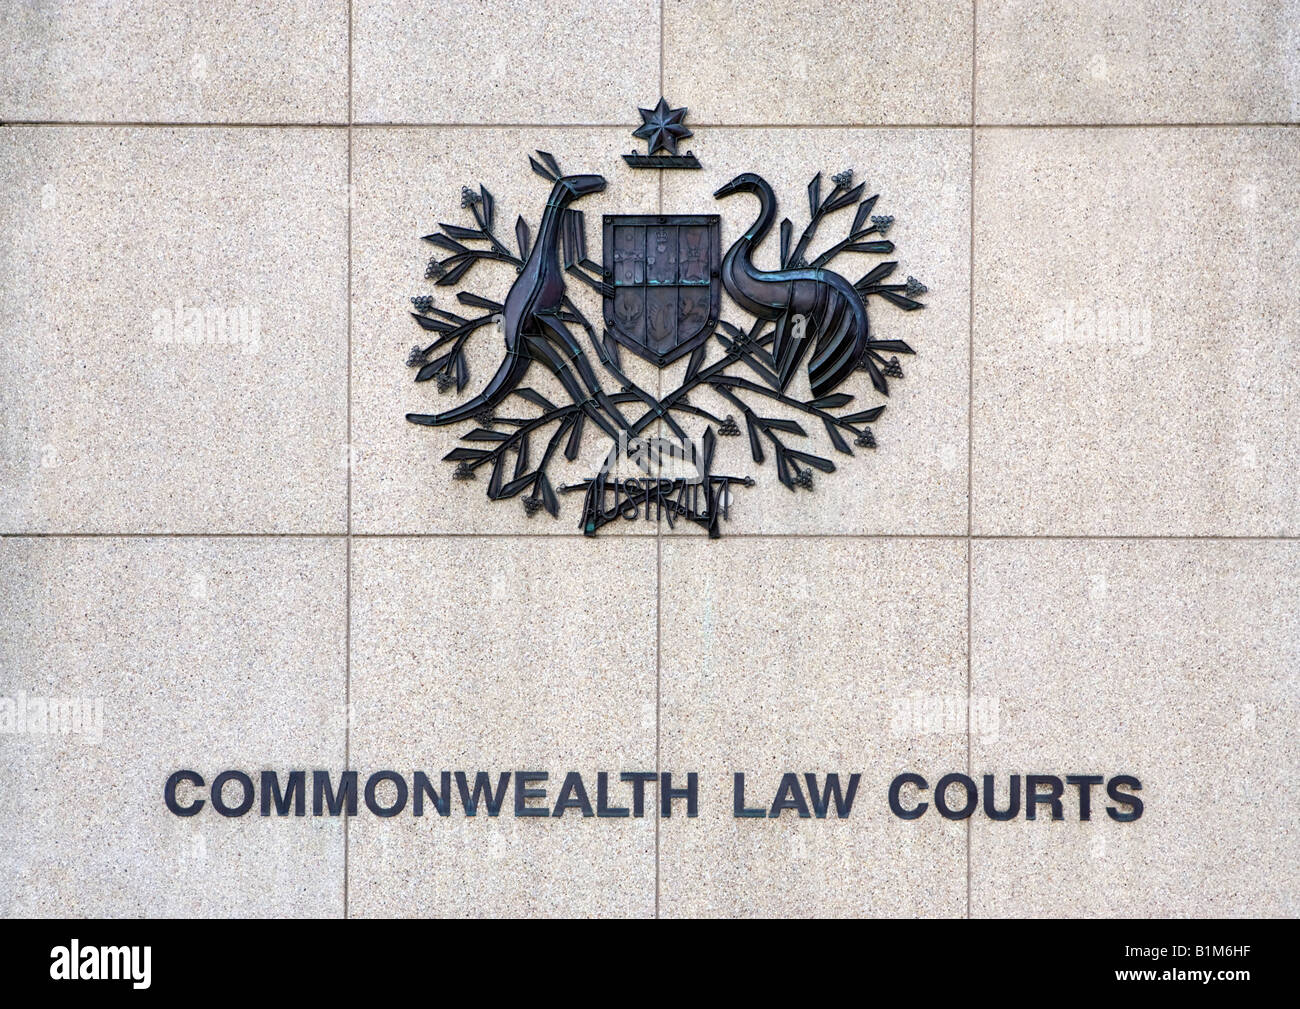 The Commonwealth Law Courts and coat of arms in Perth, Western Australia - Stock Image